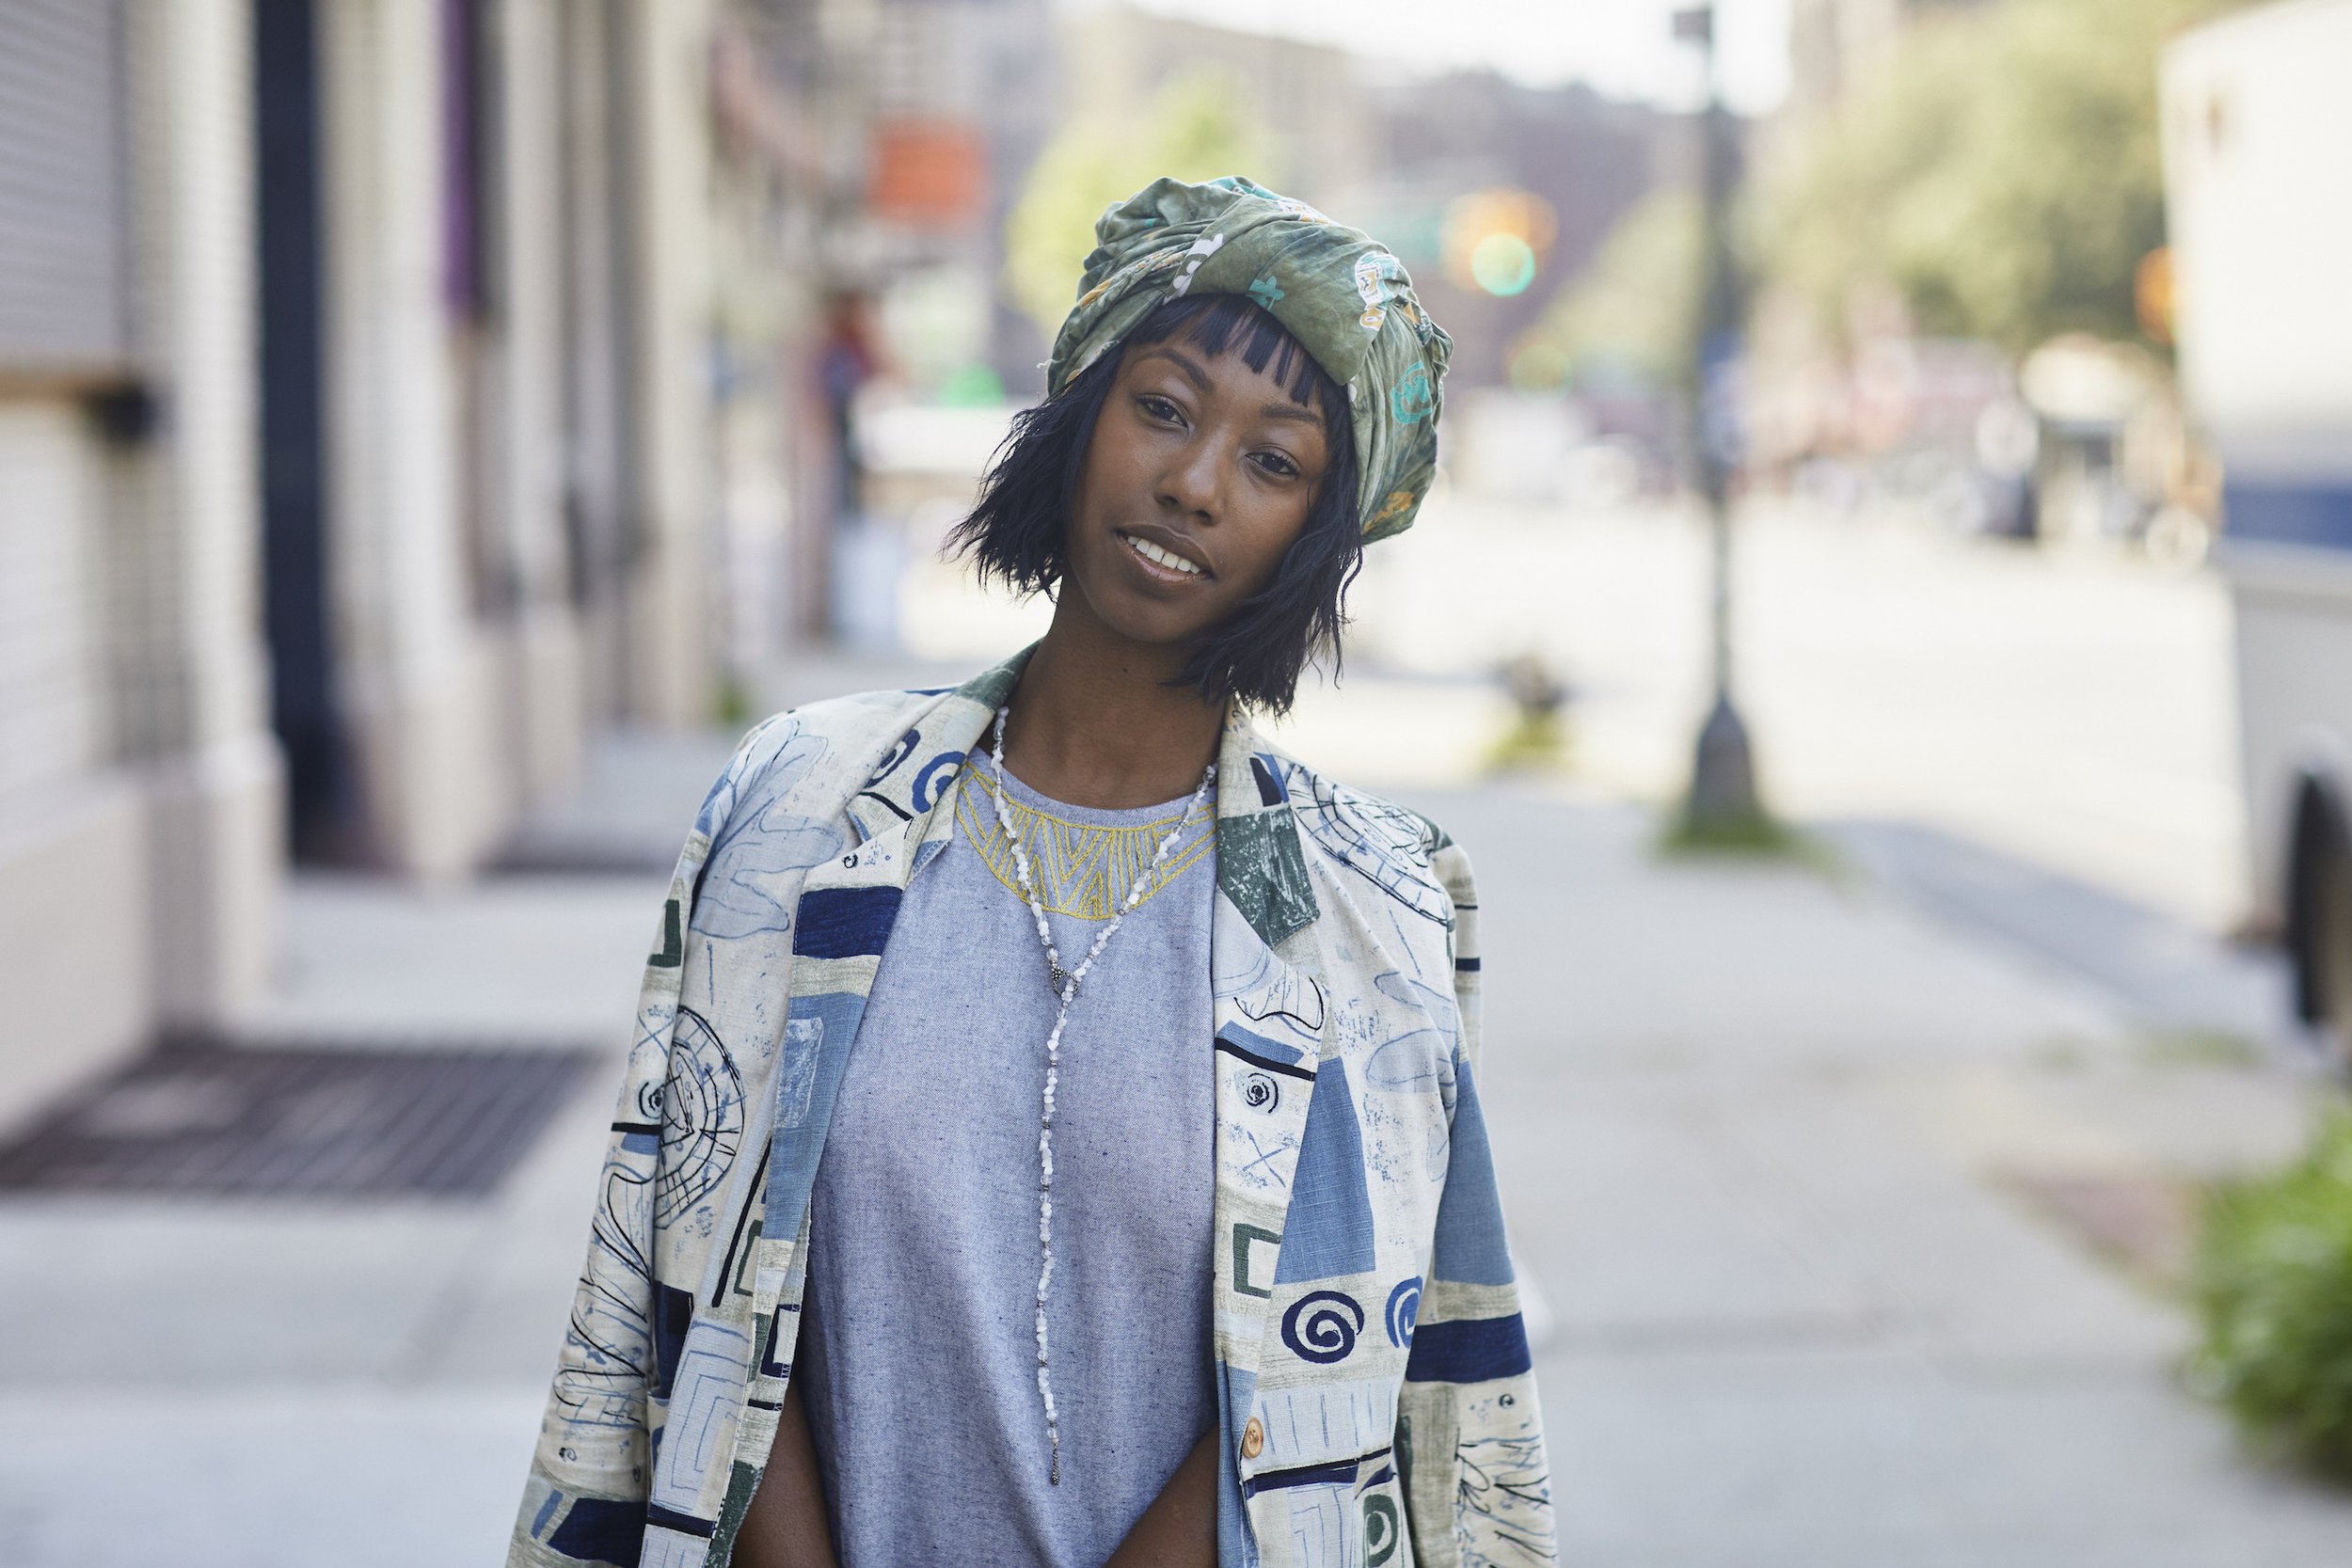 Chic blue-toned outfit with green headwrap // A Week Of Outfits With Dominique Drakeford, Founder Of Melanin & Sustainable Style on The Good Trade